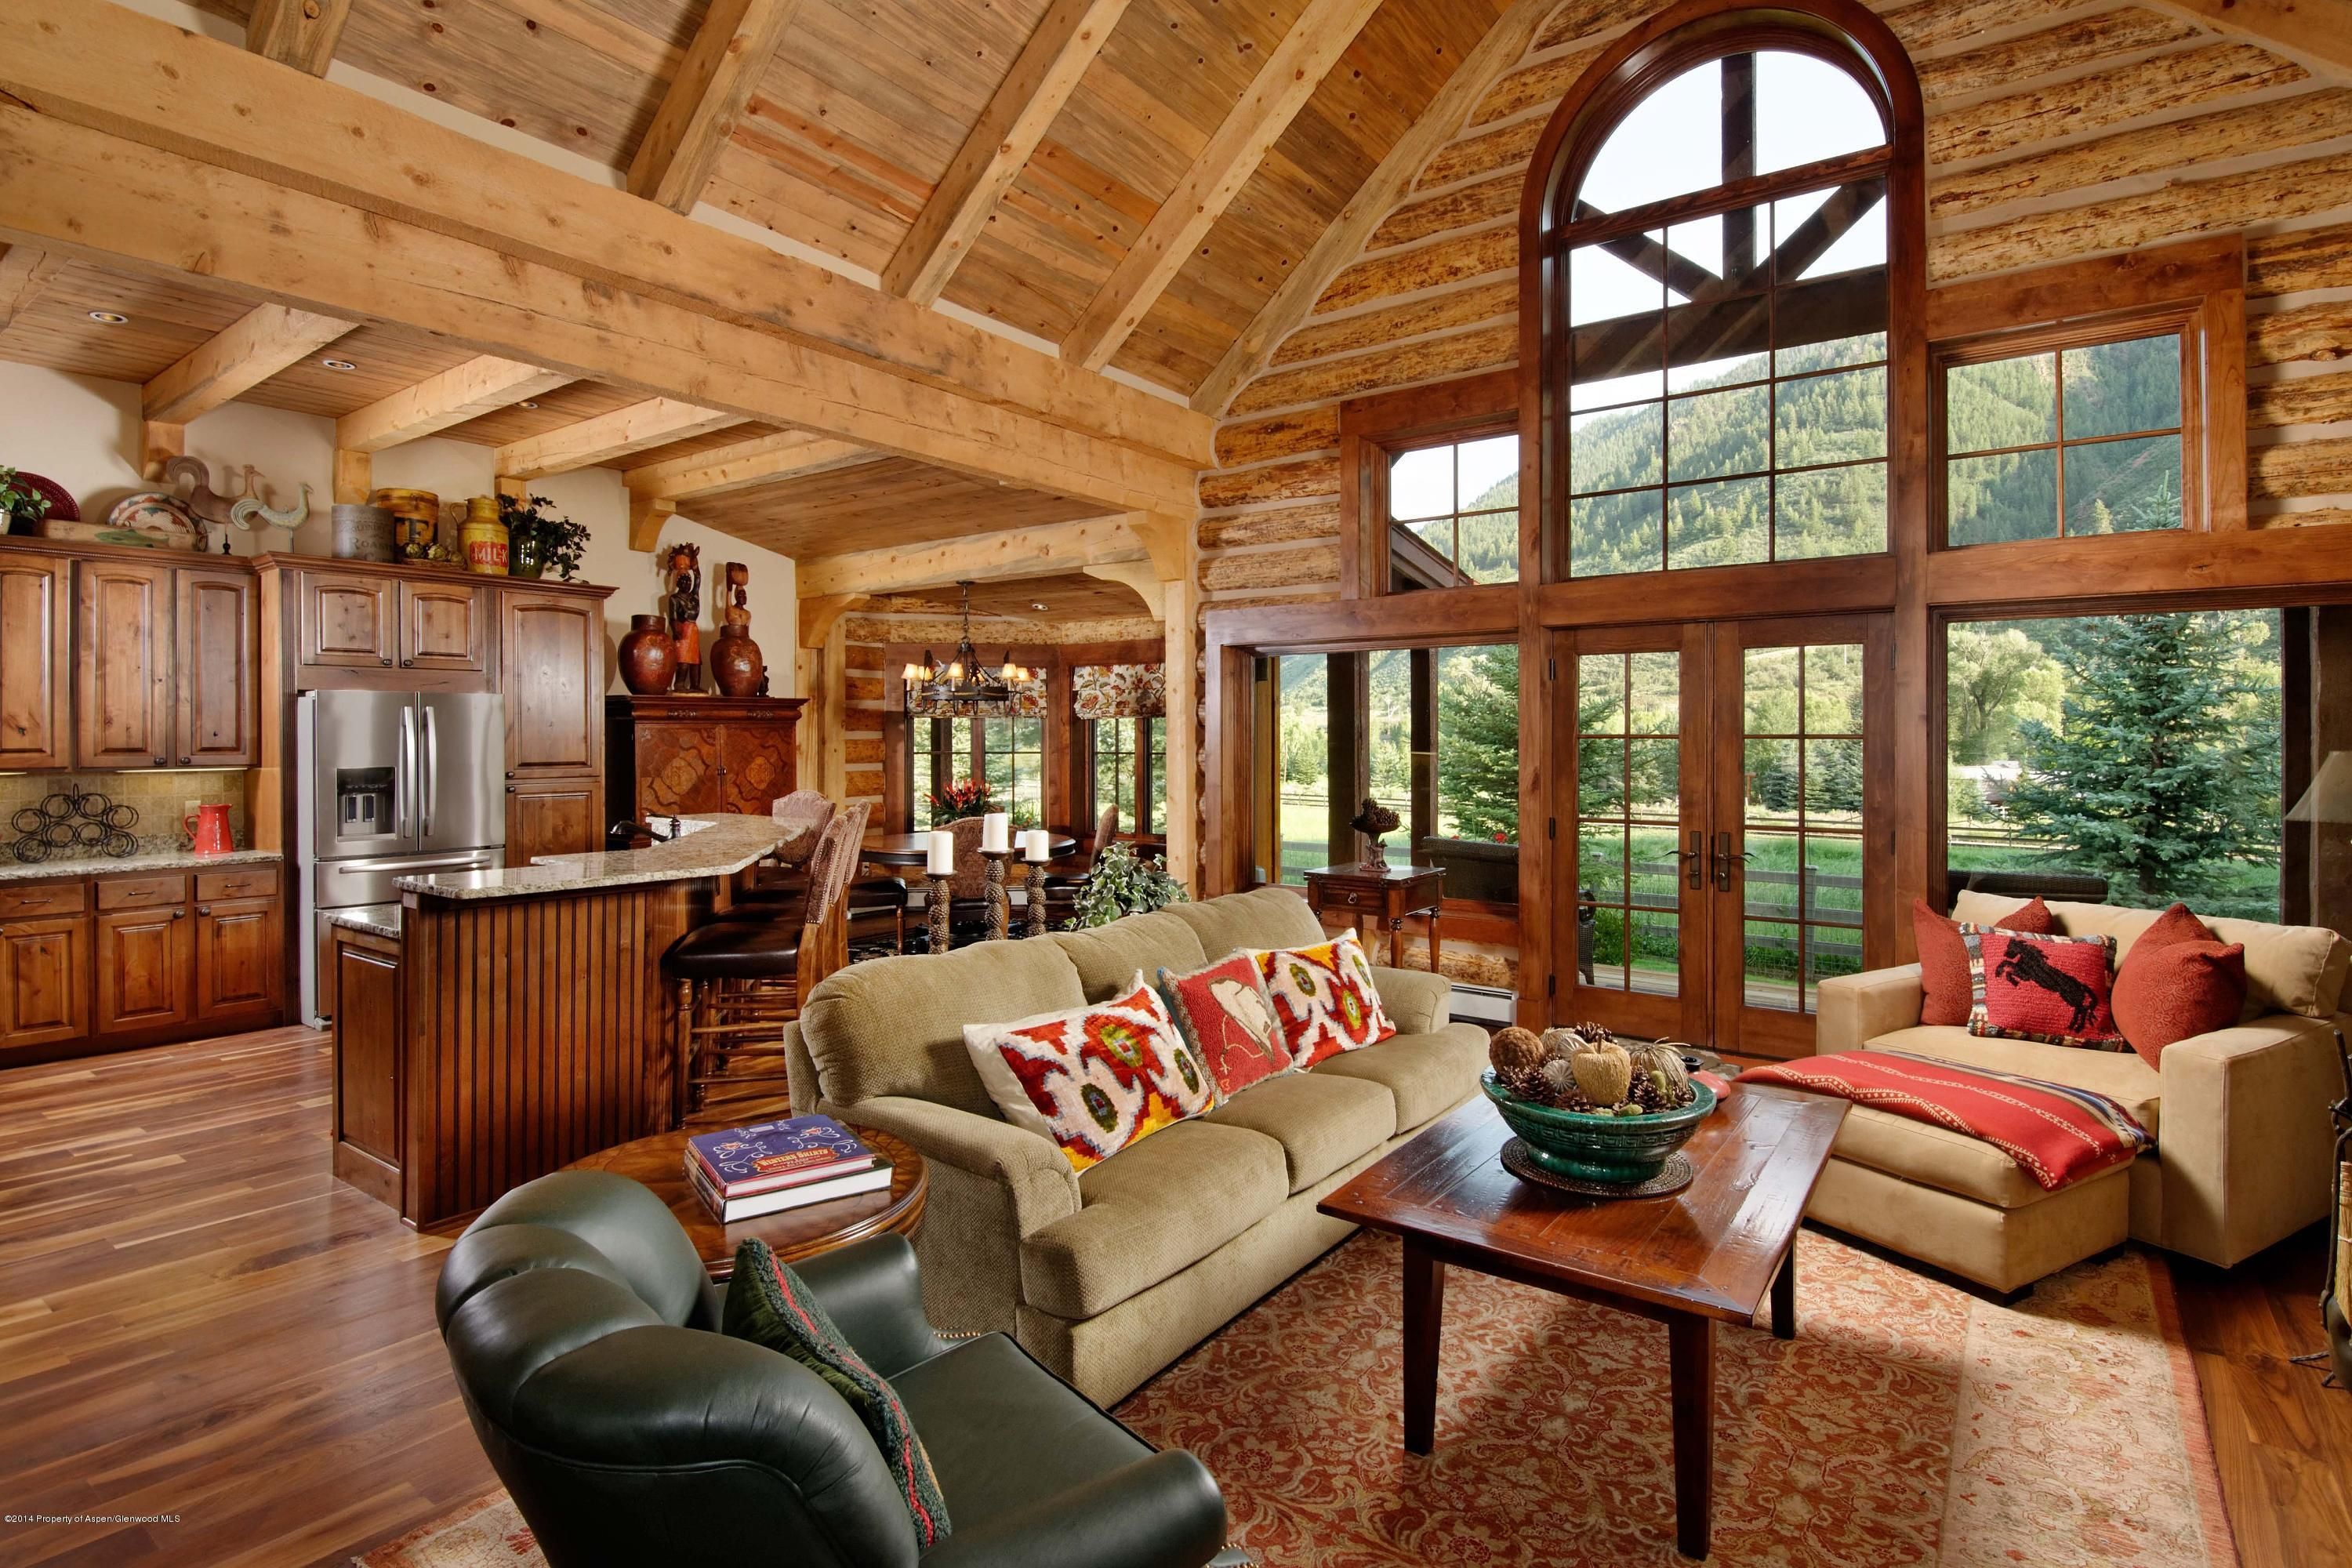 MLS# 135595 - 28 - 50 E River Ranch Road, Snowmass, CO 81654